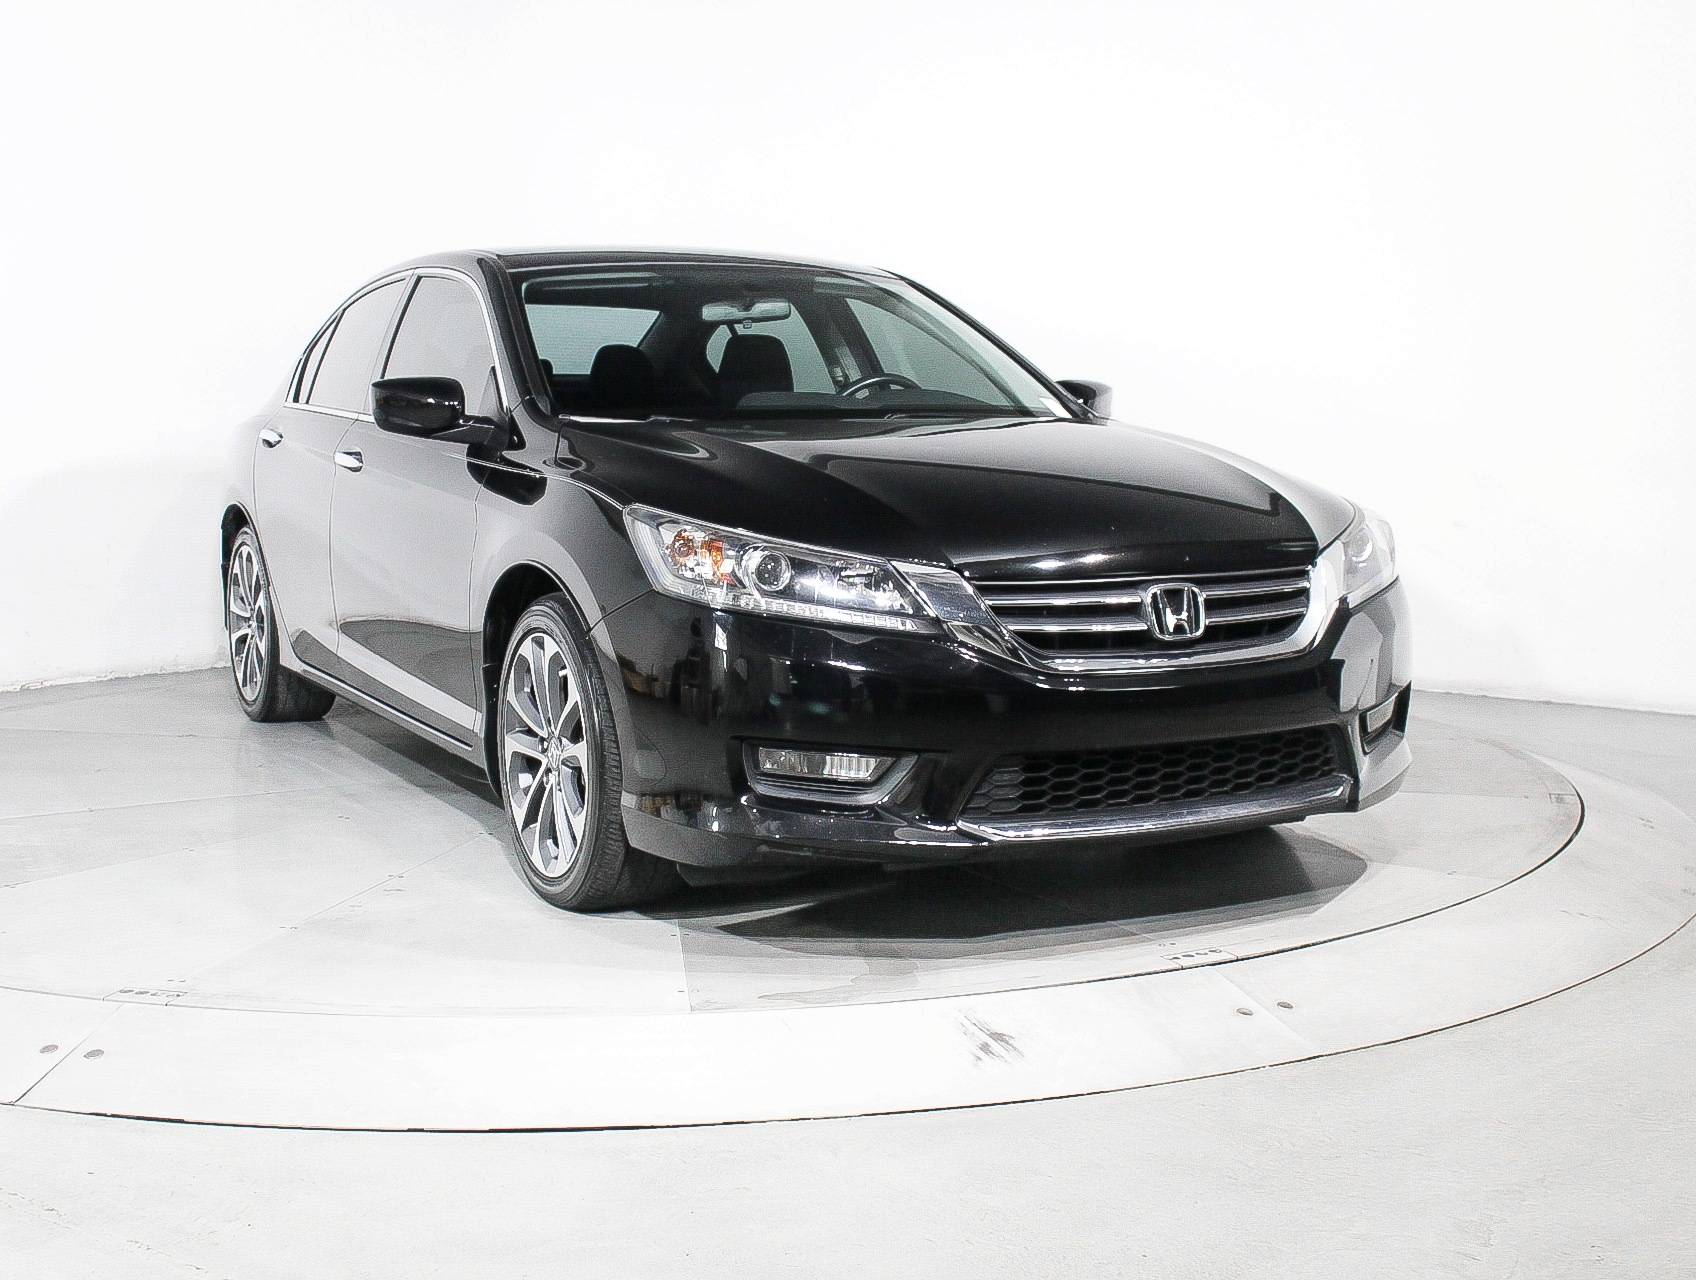 Used 2015 honda accord sport sedan for sale in miami fl for Honda accord sport for sale near me